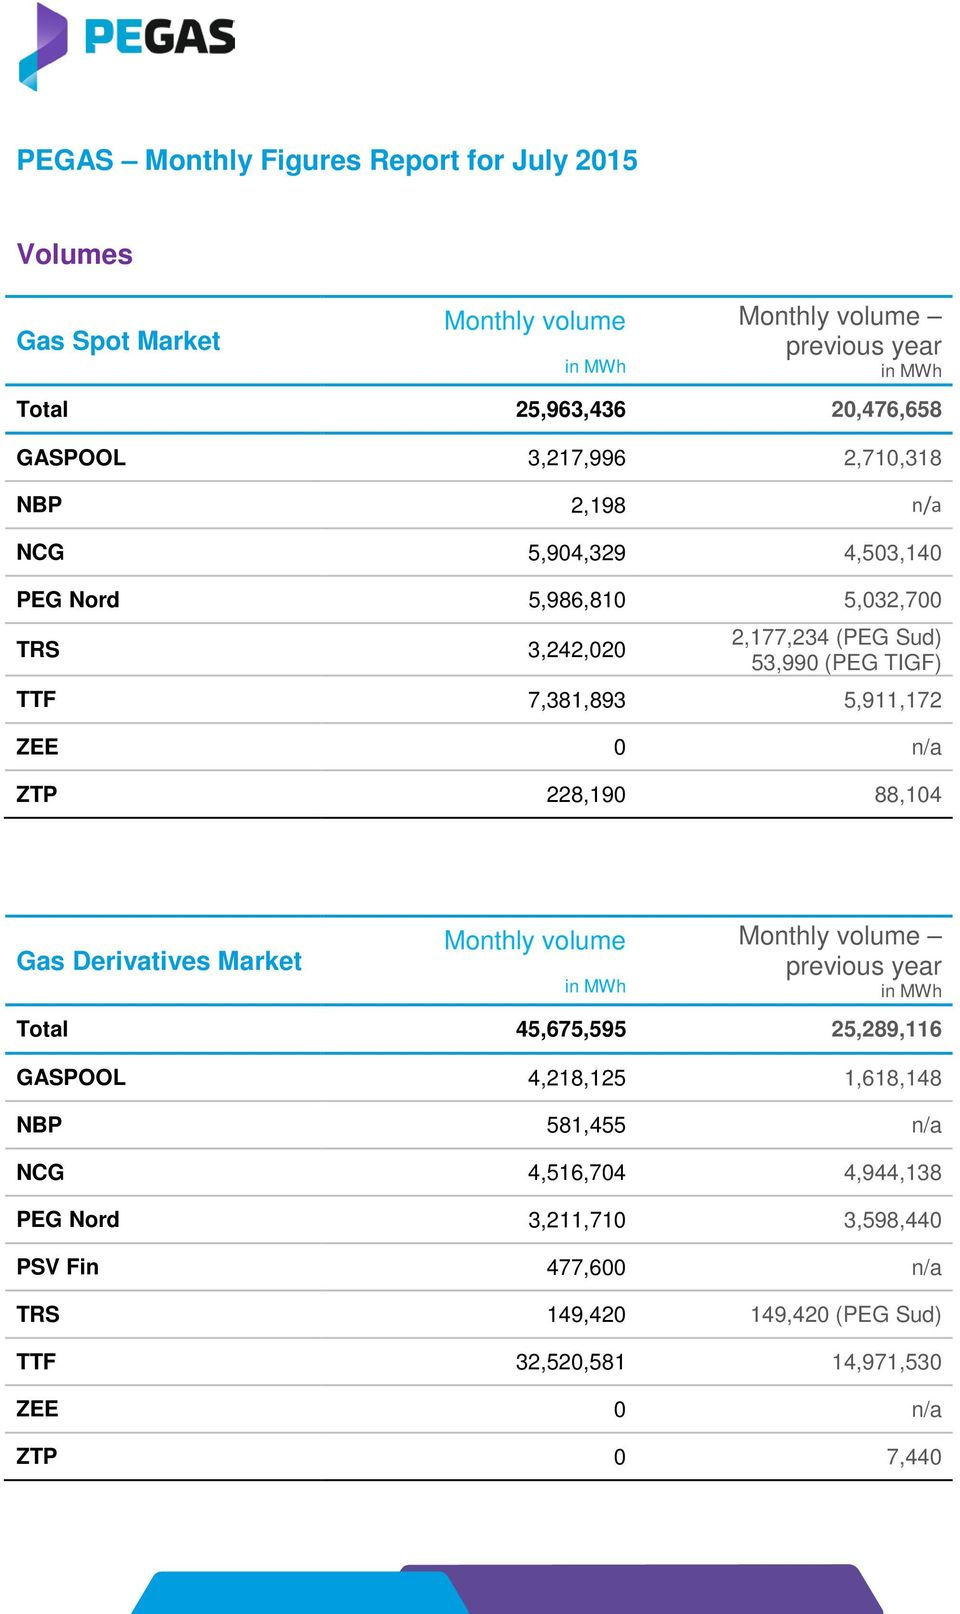 0 n/a ZTP 228,190 88,104 Gas Derivatives Market Monthly volume Monthly volume previous year Total 45,675,595 25,289,116 GASPOOL 4,218,125 1,618,148 NBP